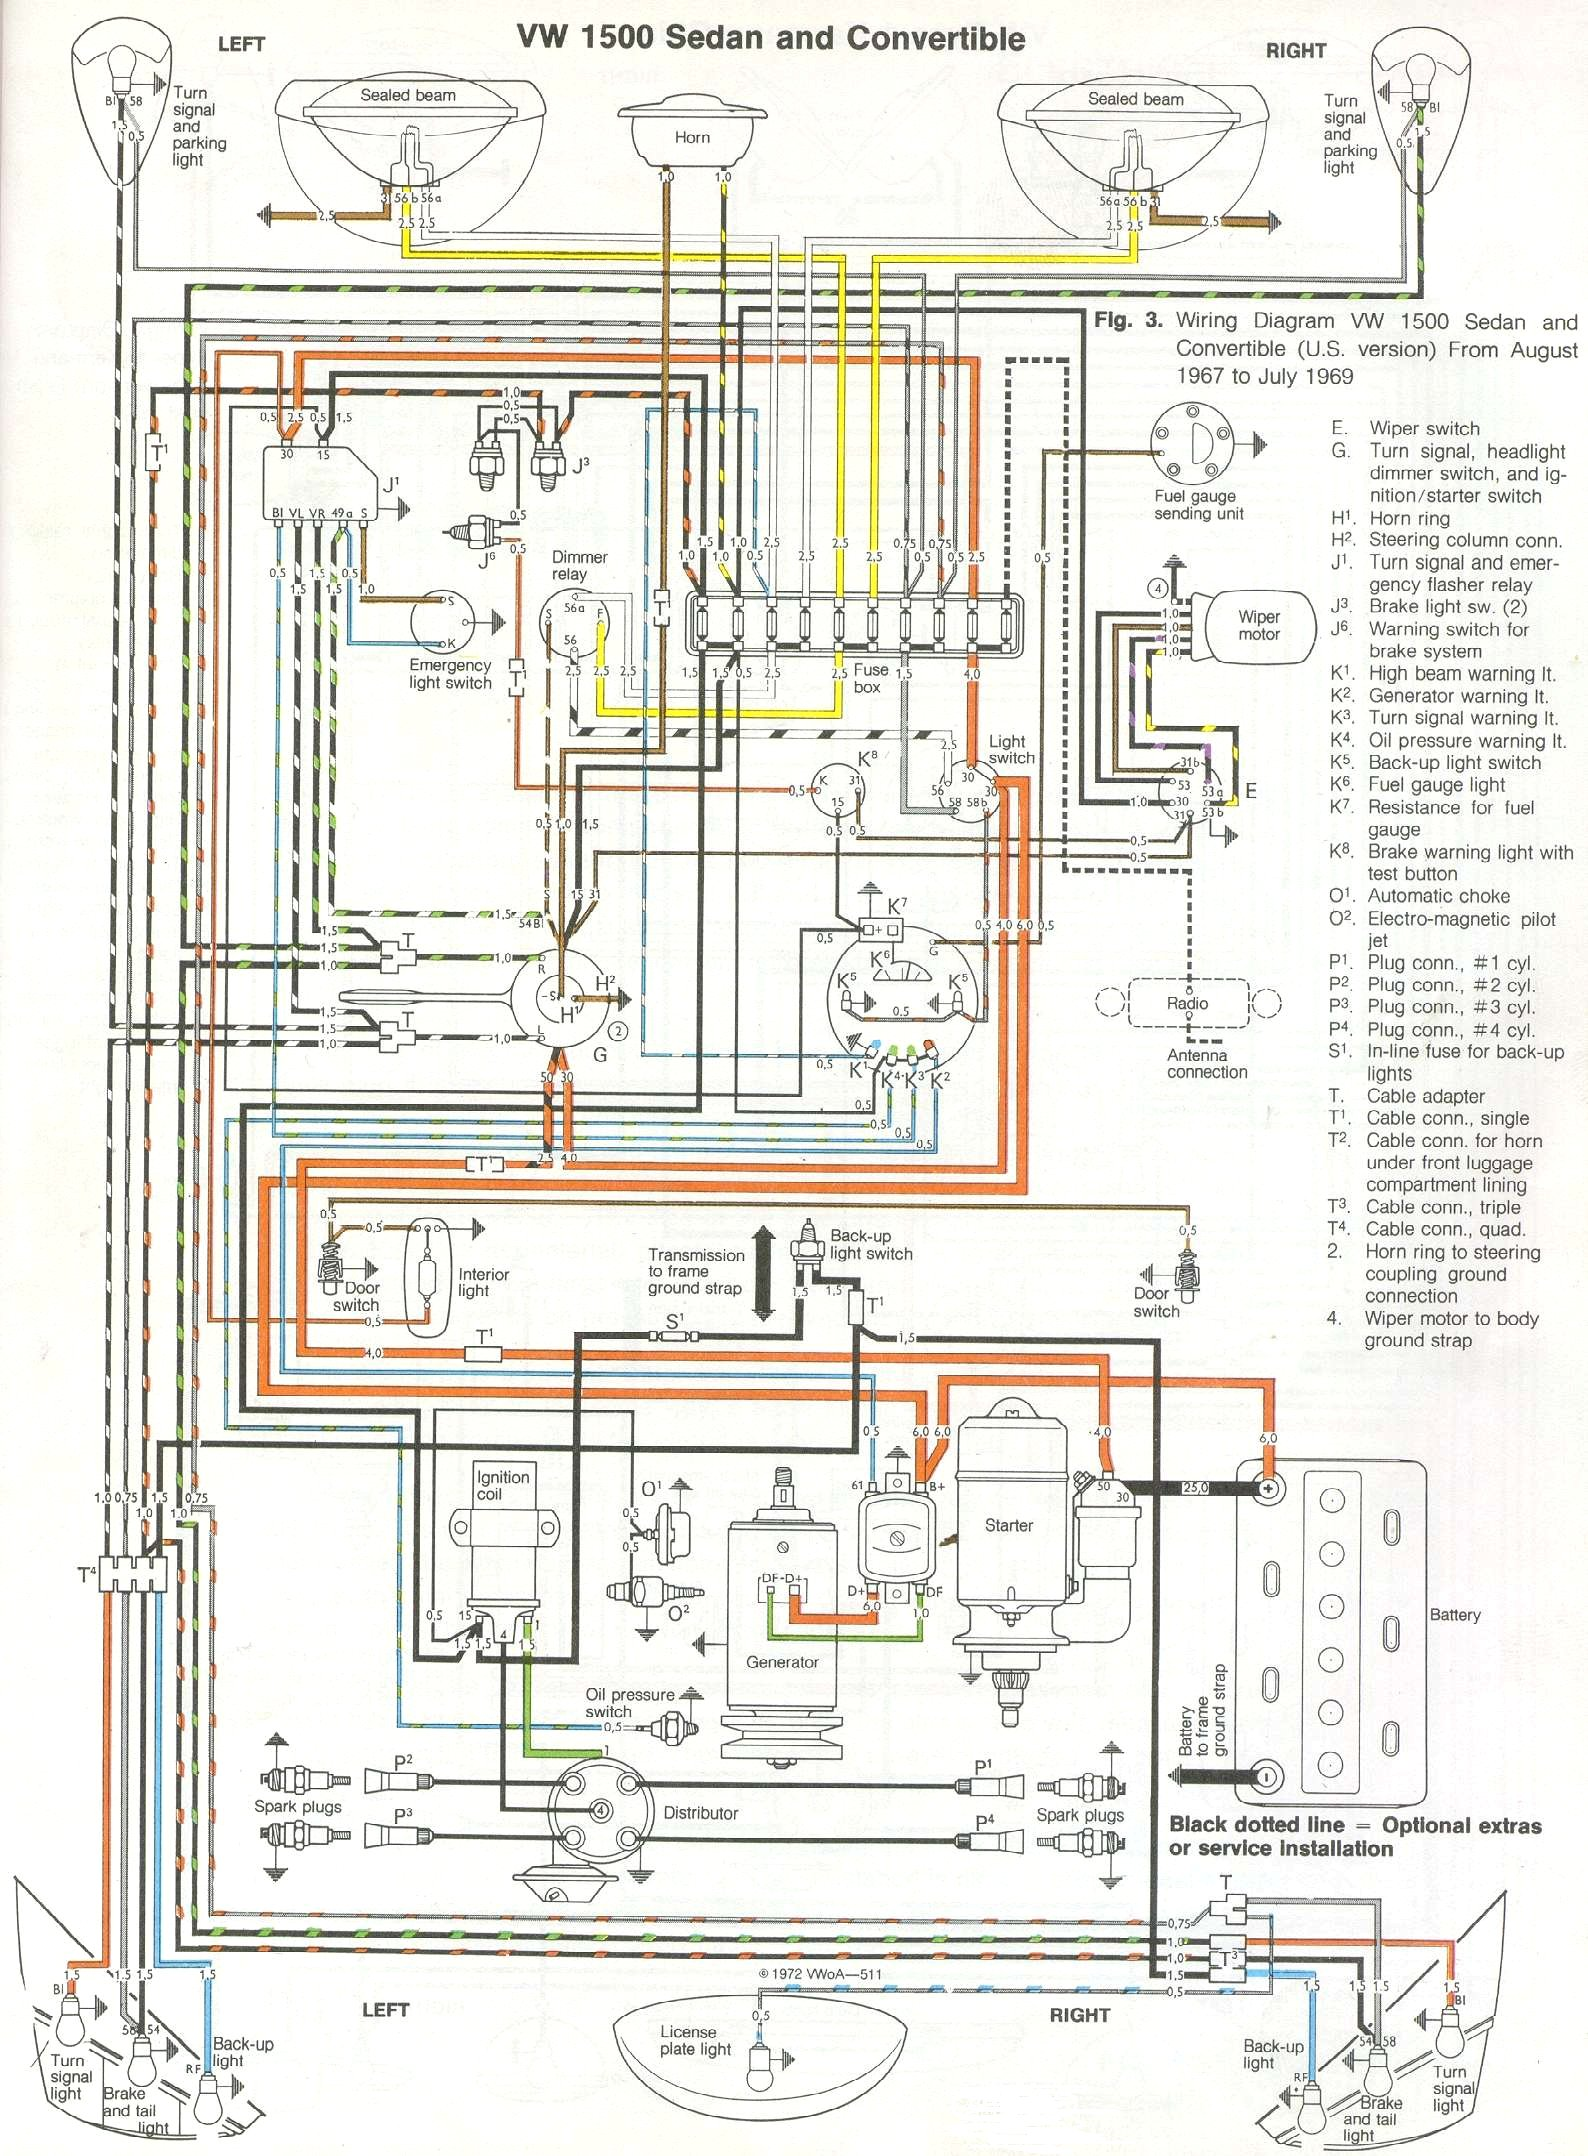 1982 Bmw 320i Wiring Diagram Library 71 Chevrolet C10 396 Wire 1969 Beetle Thegoldenbug Com Rh Engine Super